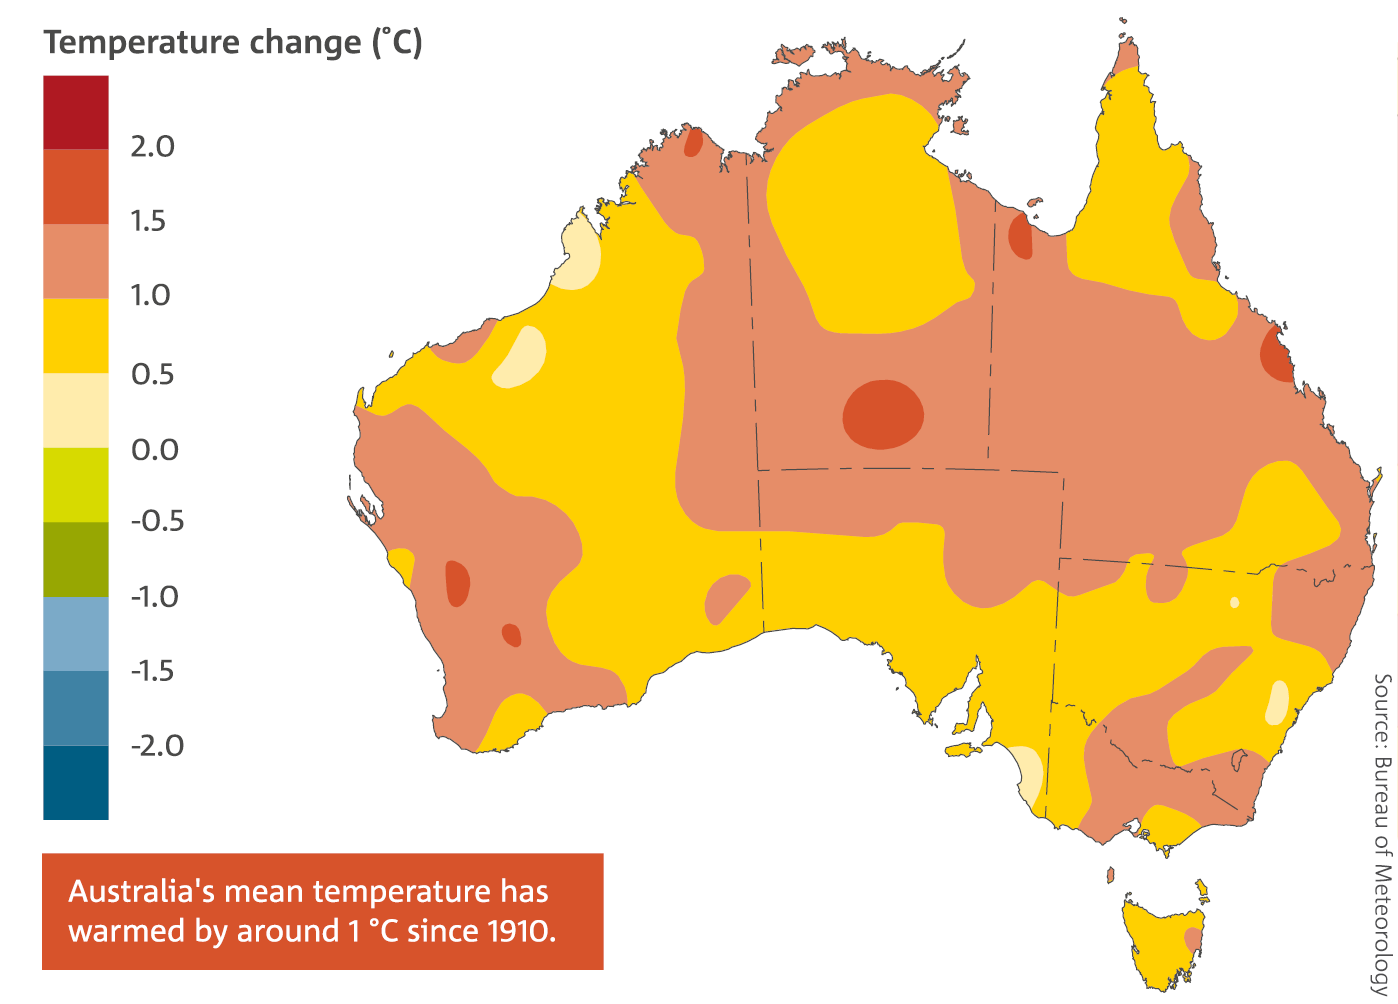 Map: Annual mean temperature changes across Australia since 1910. Australia's mean temperature has warmed by around 1 °C since 1910.